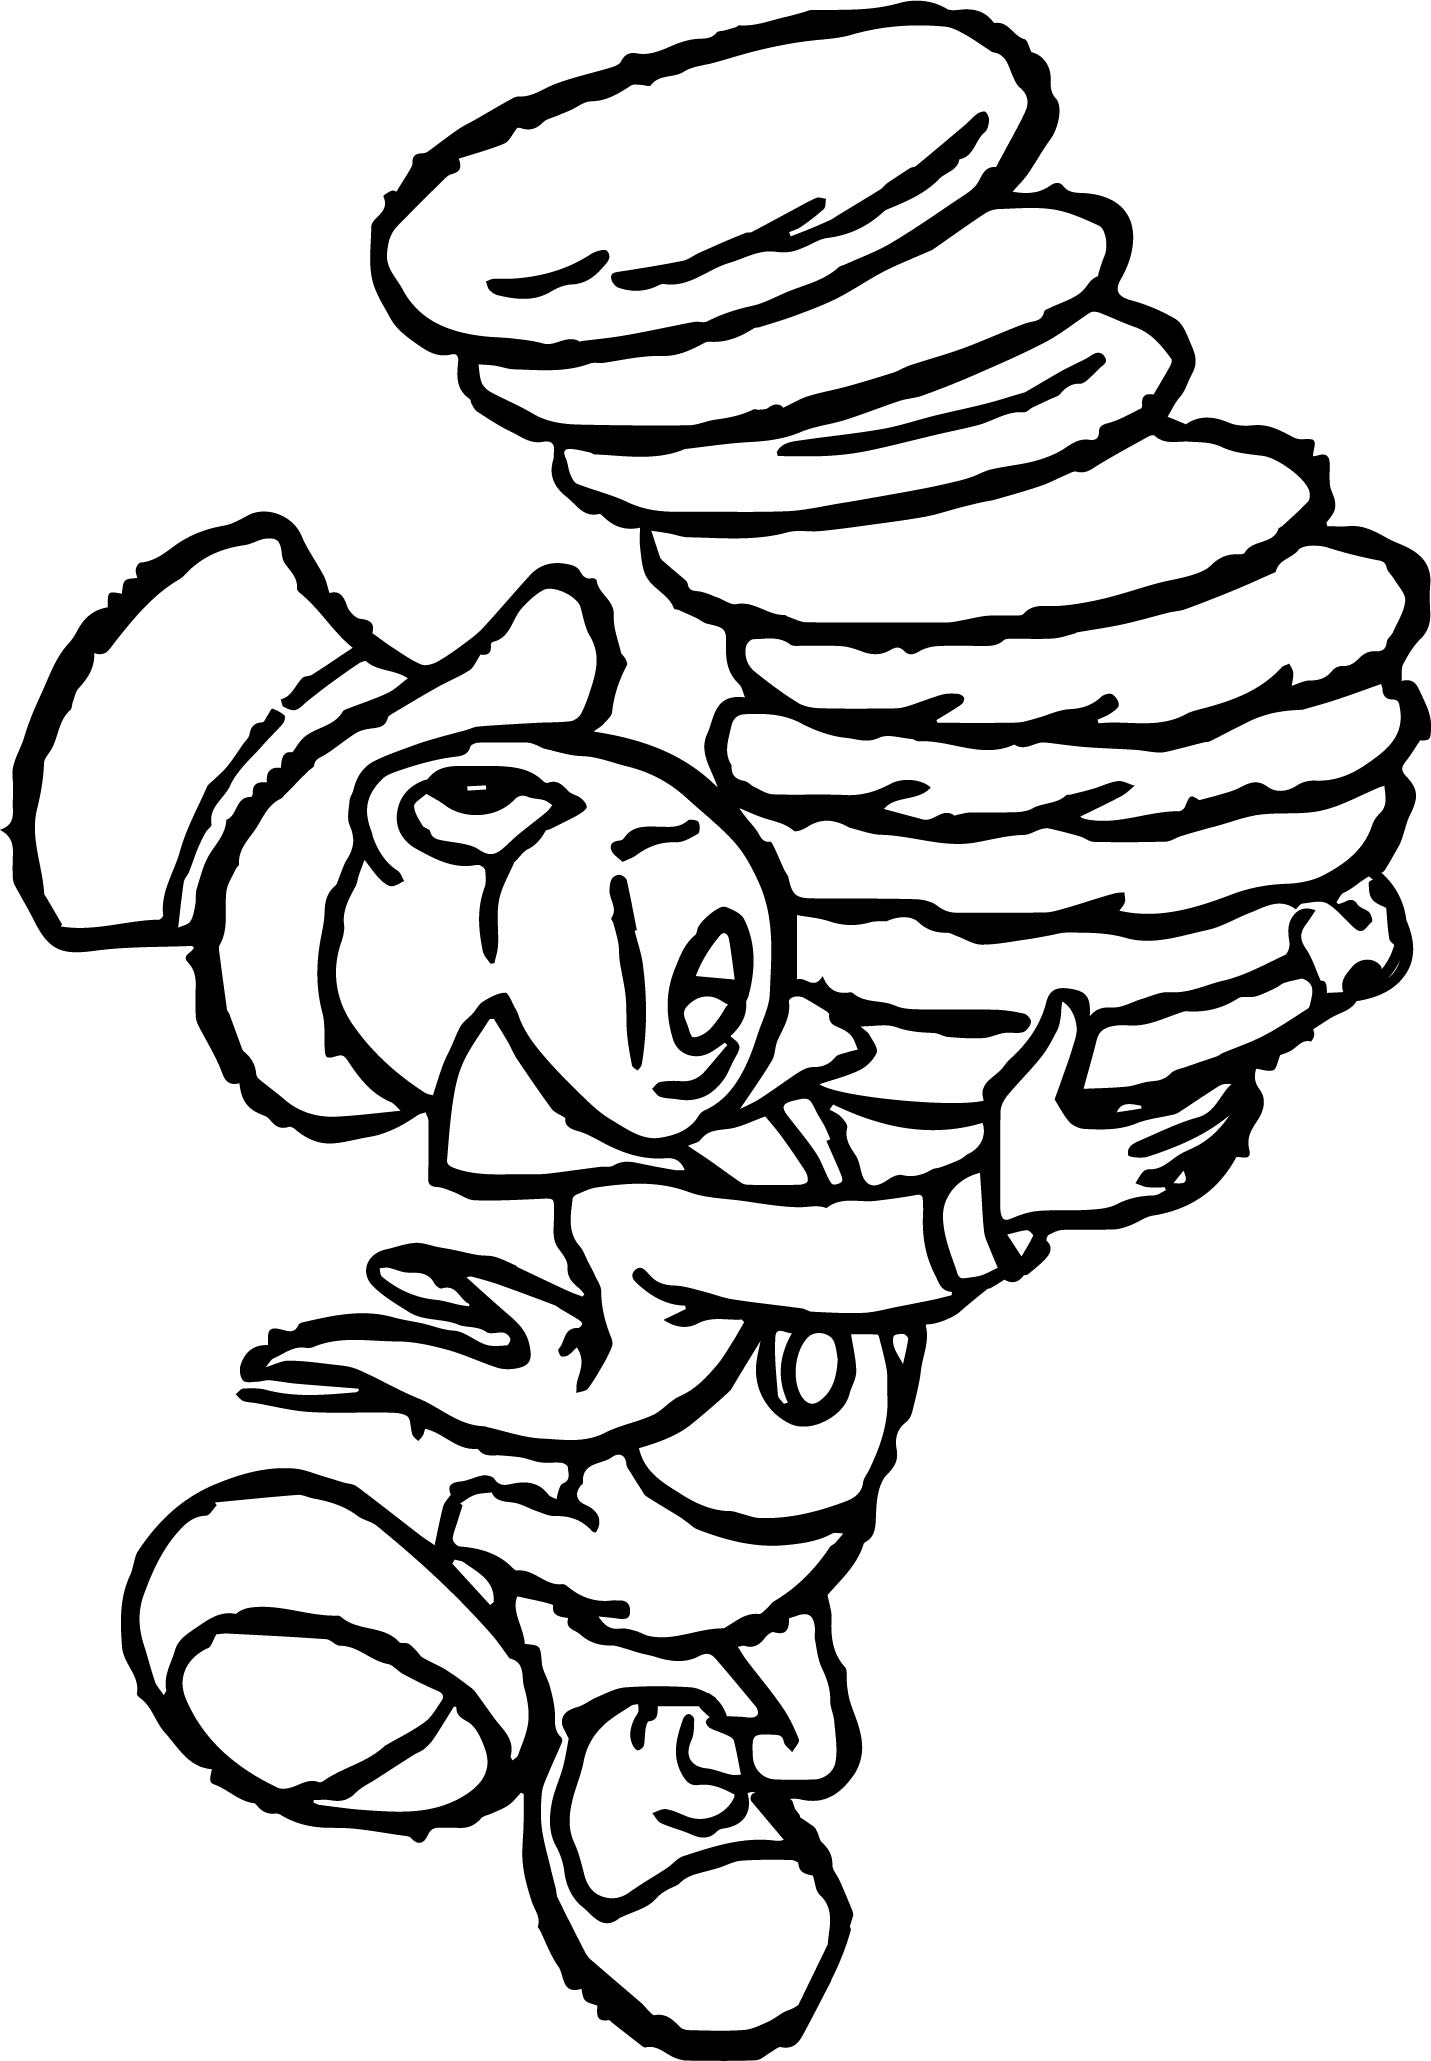 Pinocchio Jiminy Cricket Cookies Coloring Page